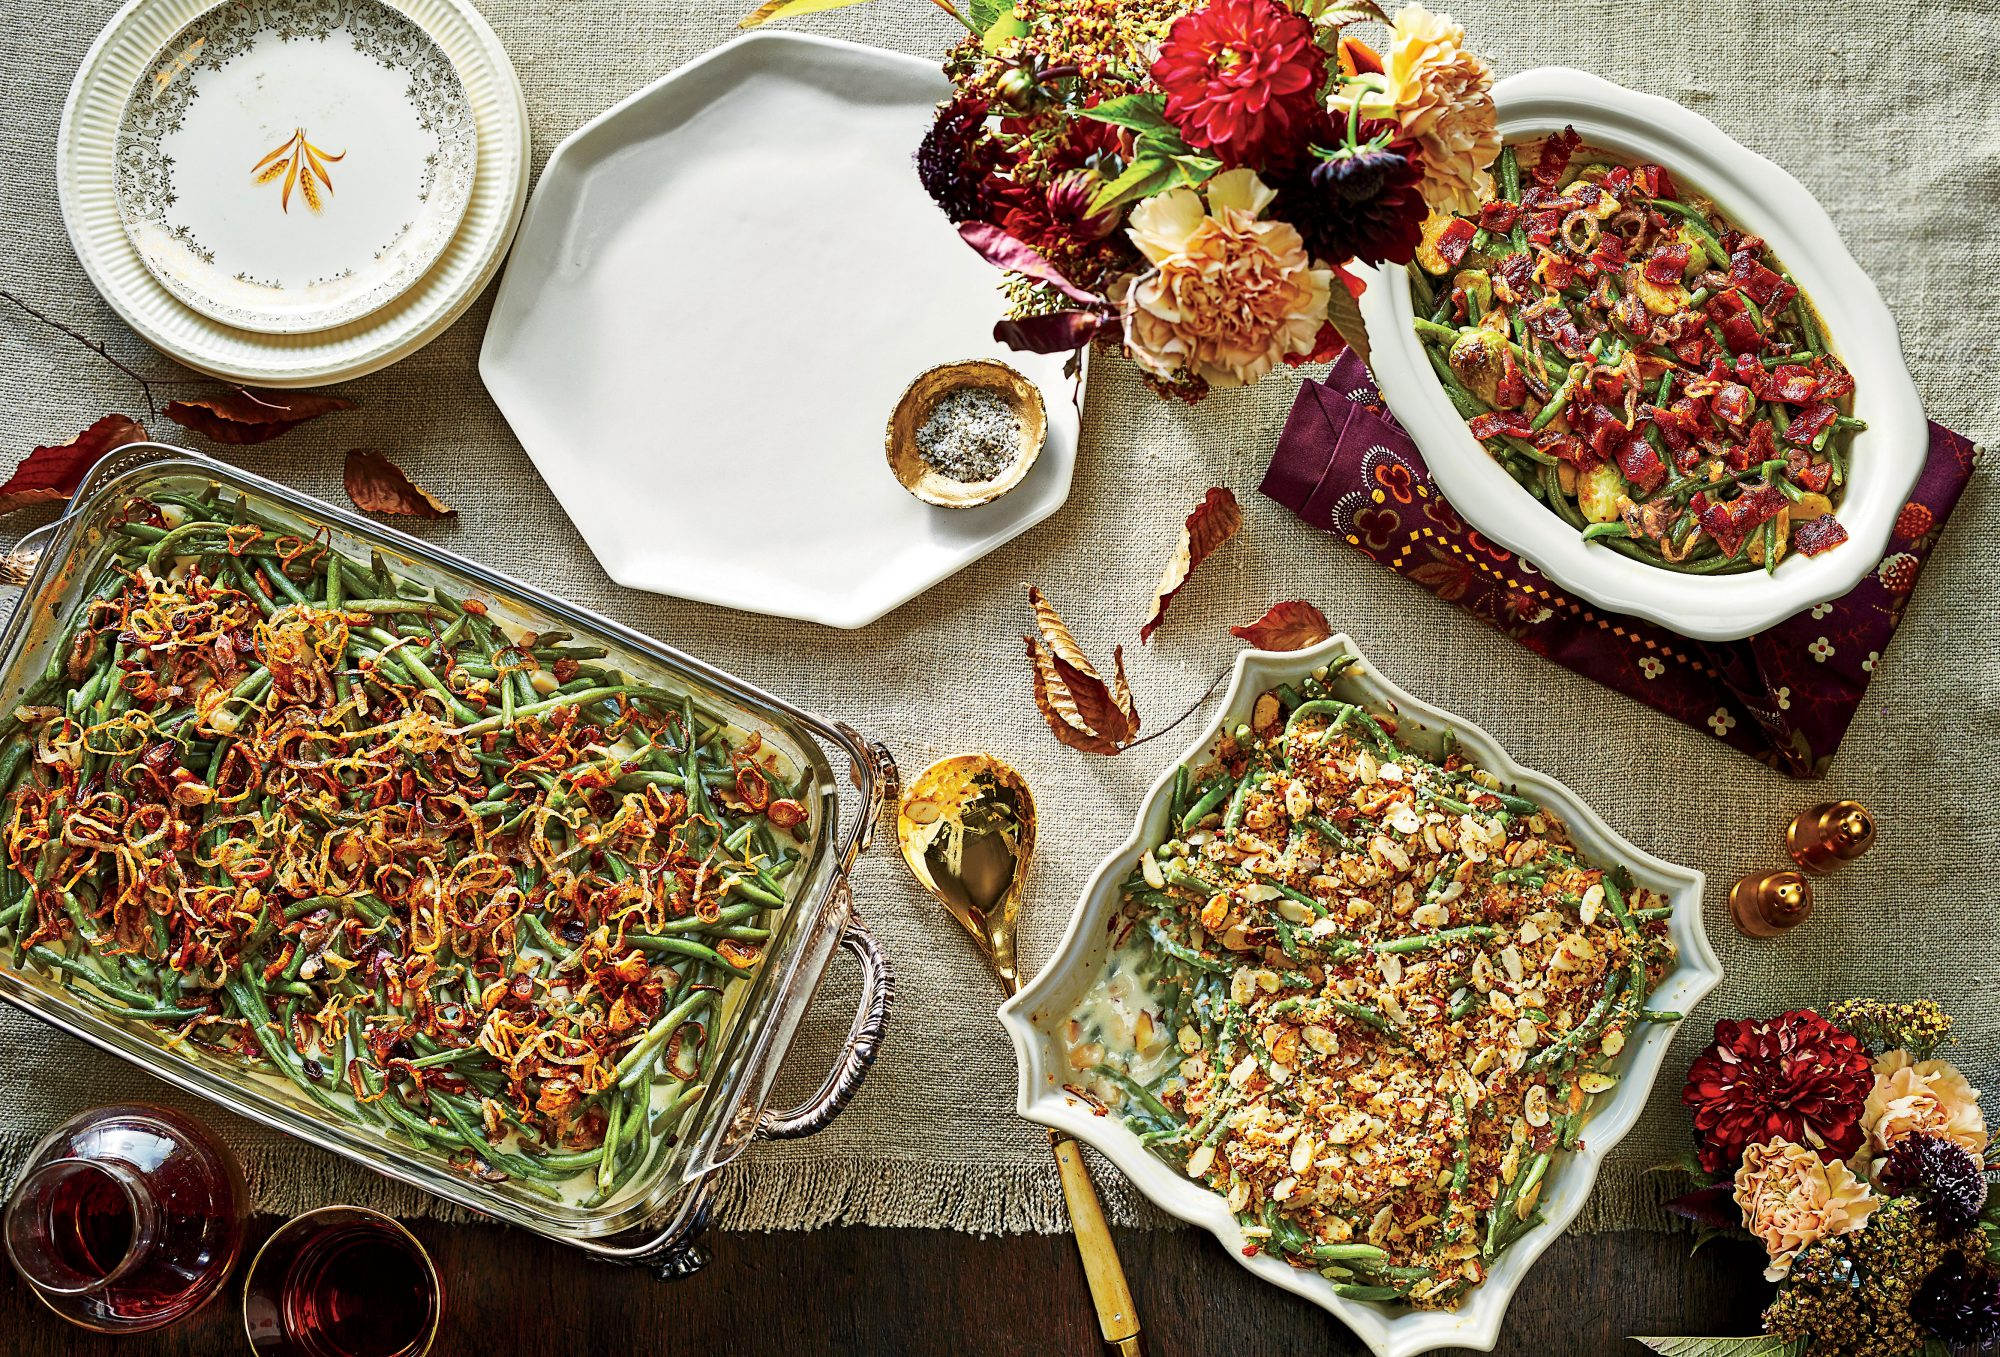 Lemon-Almond Green Bean Casserole